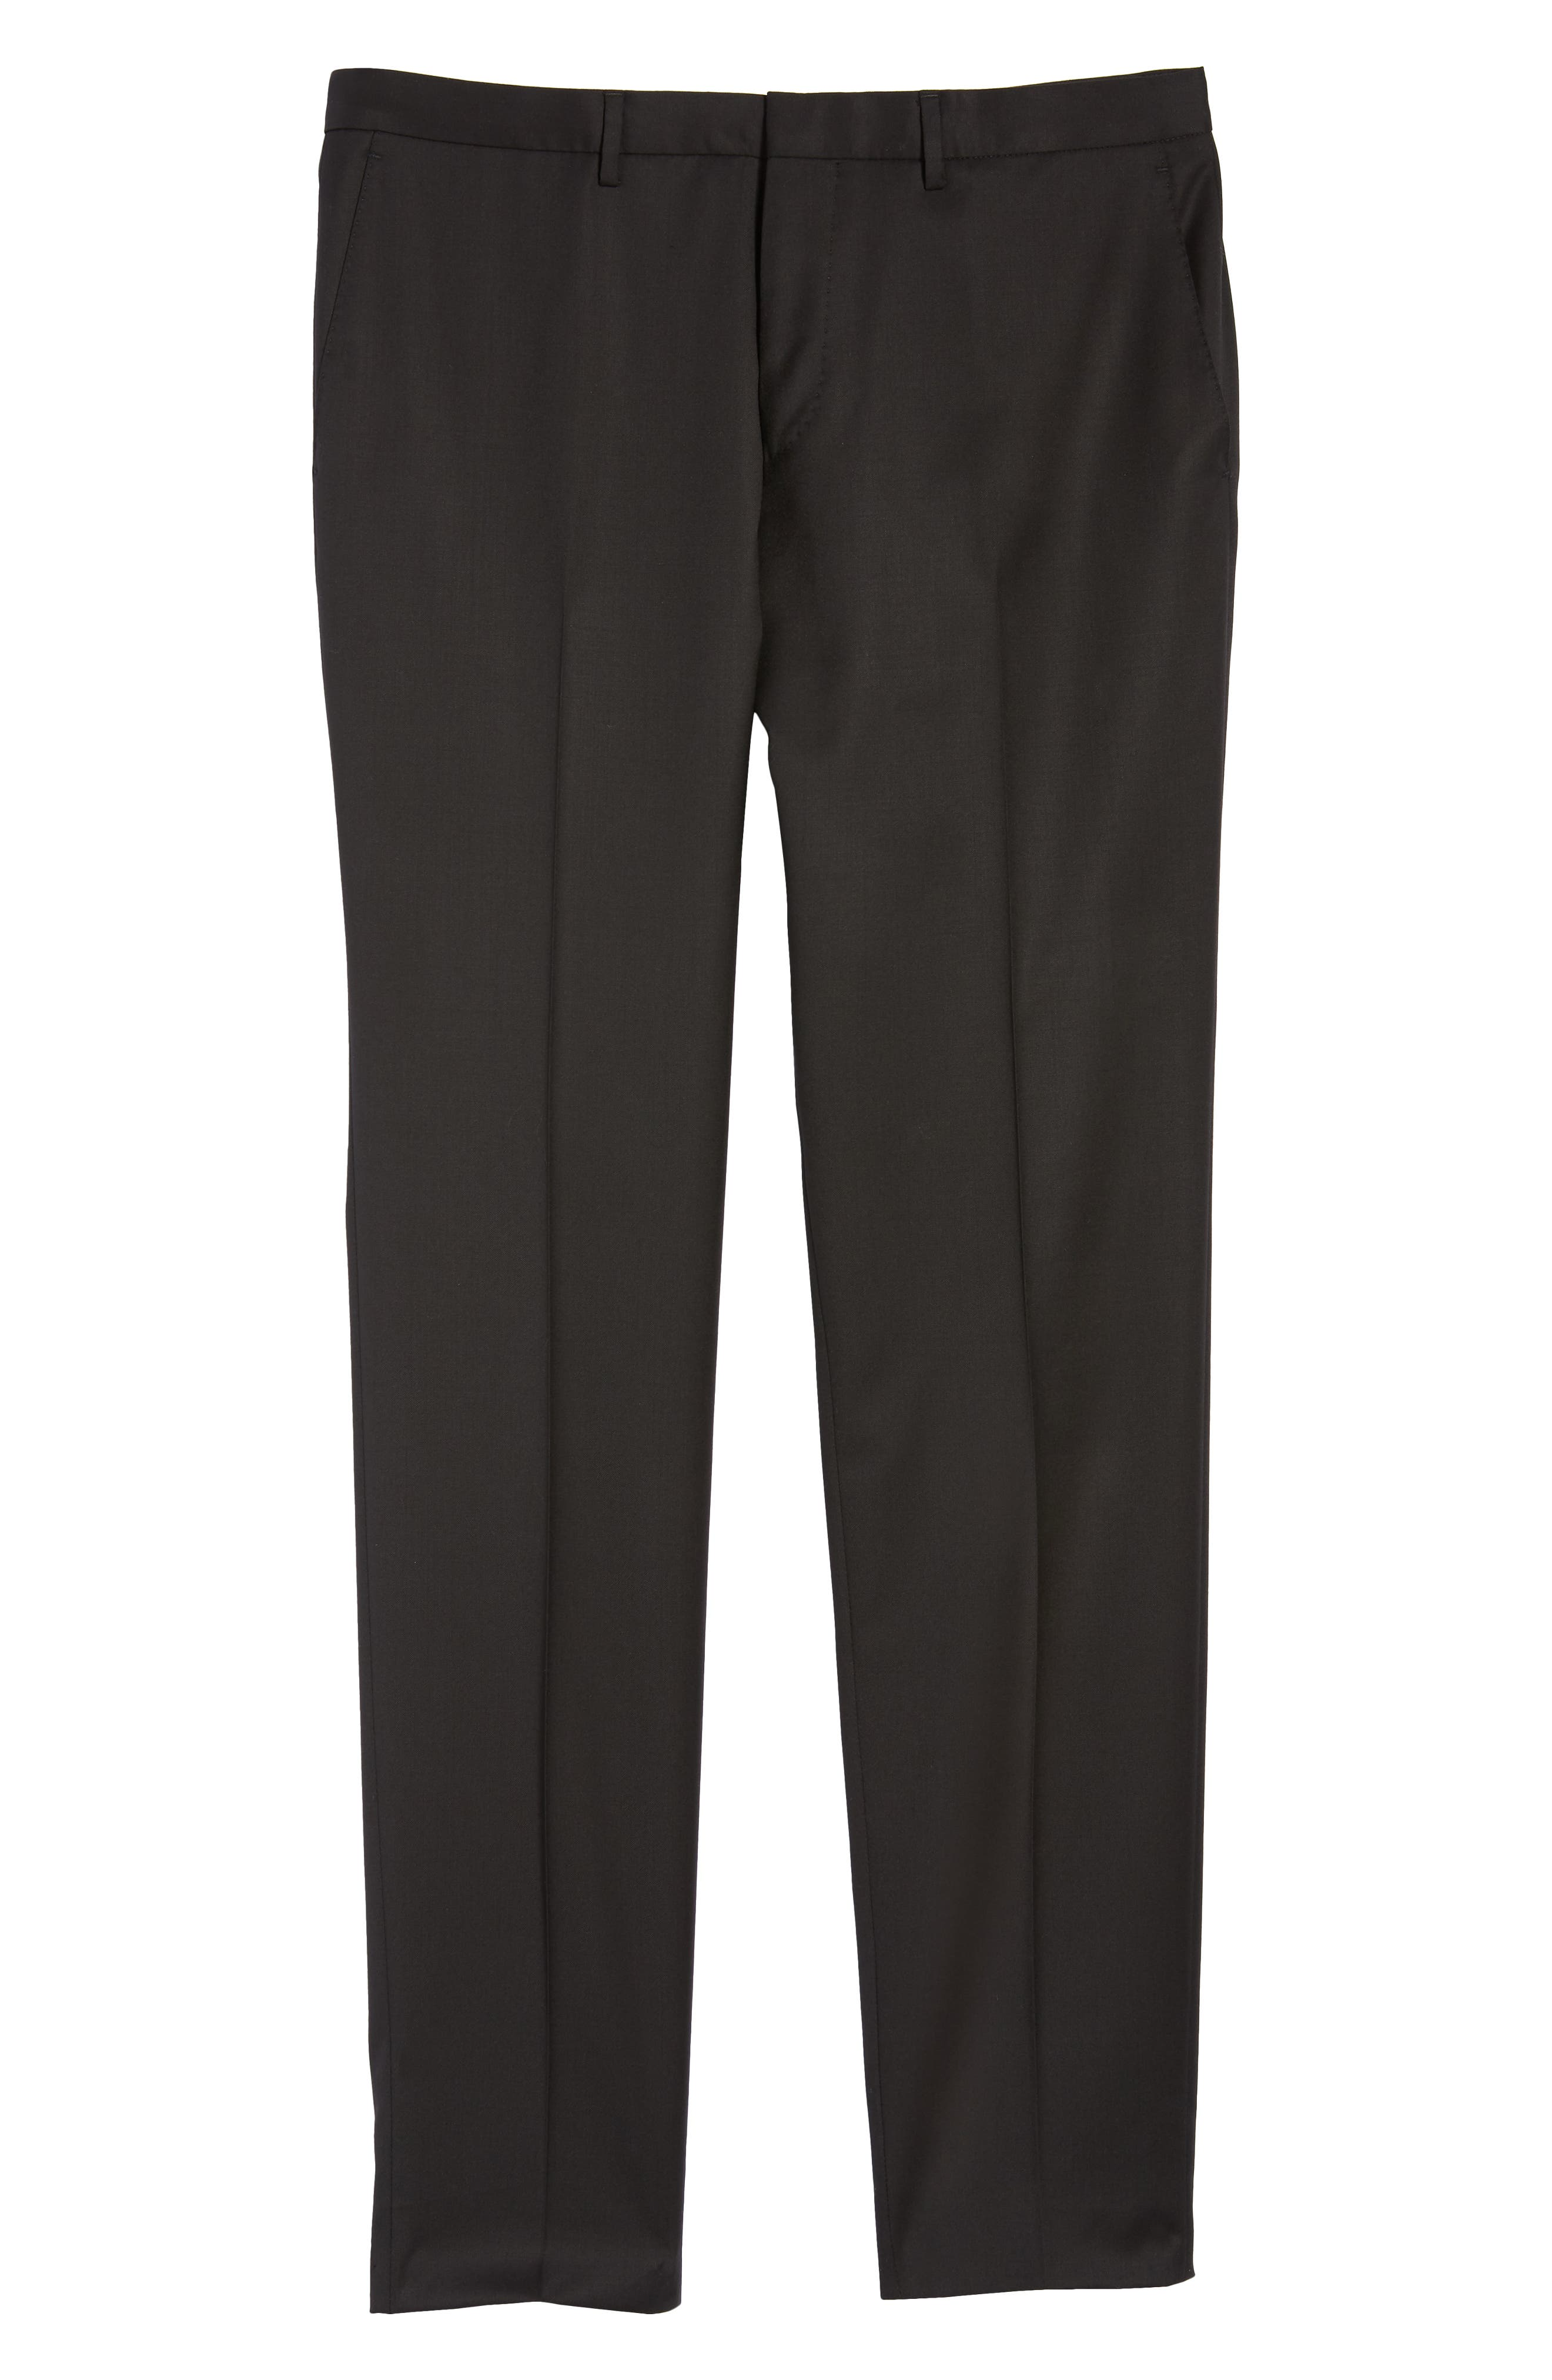 Wave CYL Flat Front Solid Wool Trousers,                             Alternate thumbnail 6, color,                             BLACK